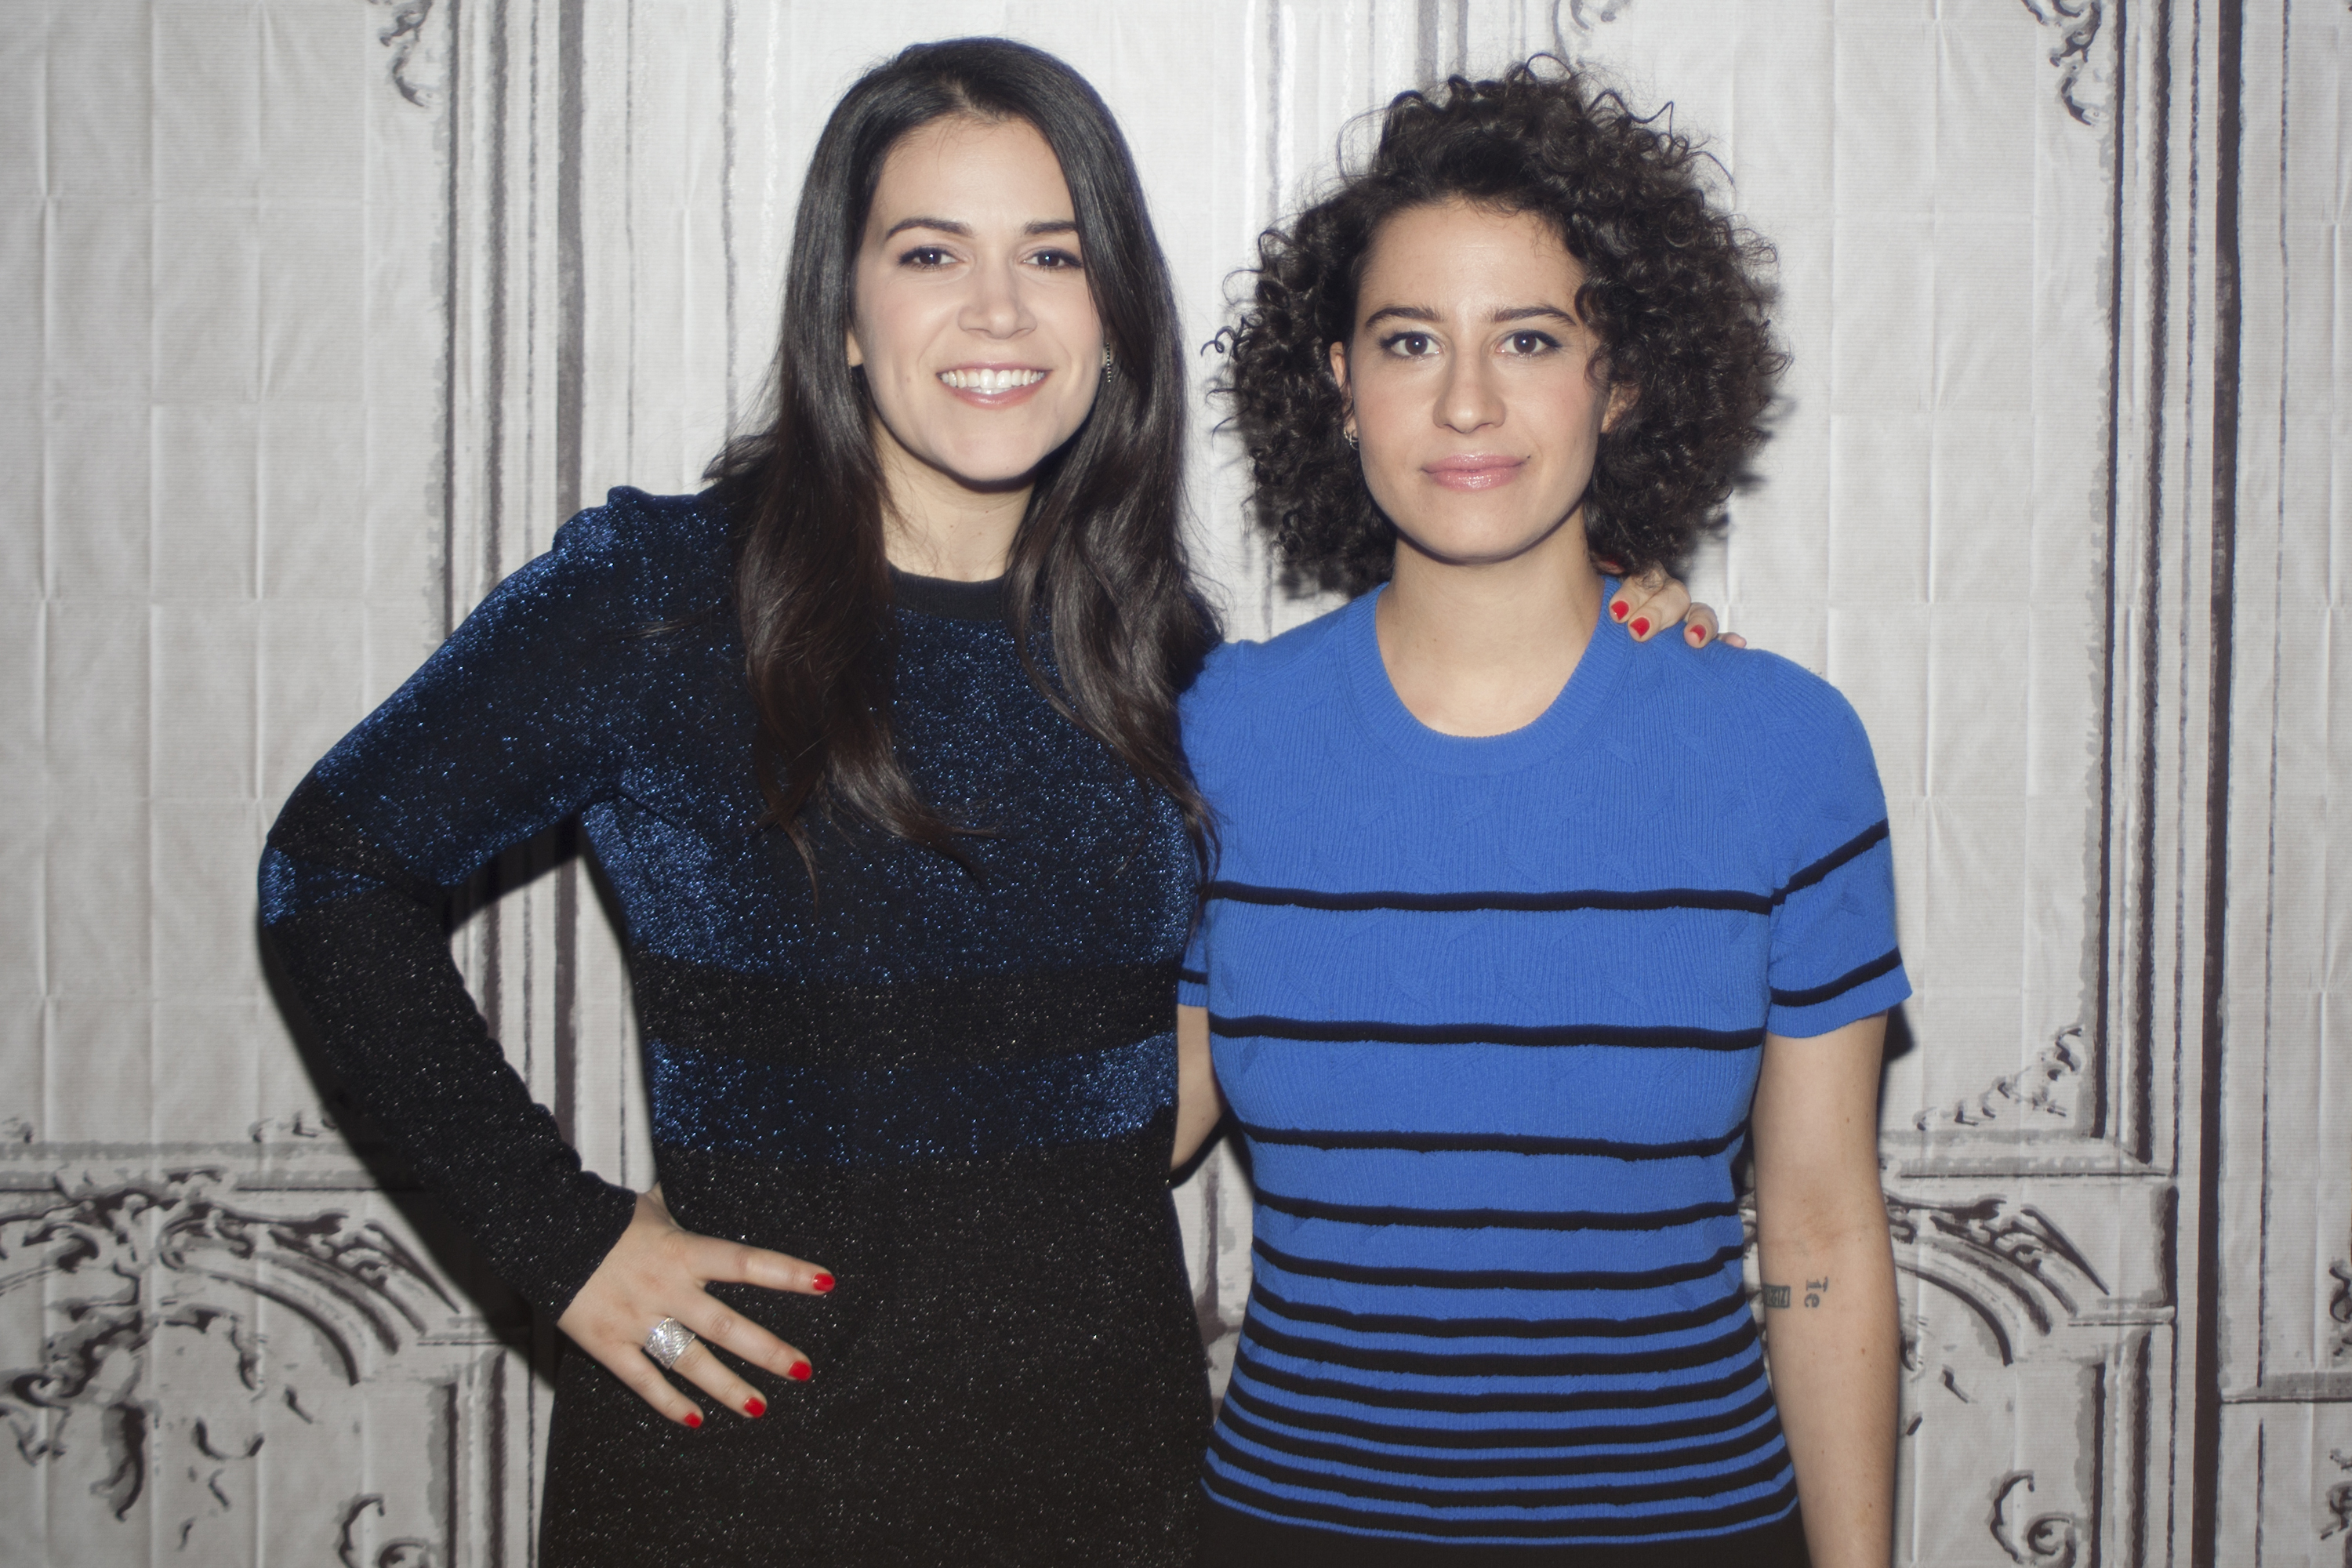 Broad City Stars Ilana Glazer and Abbi Jacobson Talk About the Most Meaningful Lessons They Learned From Their Show